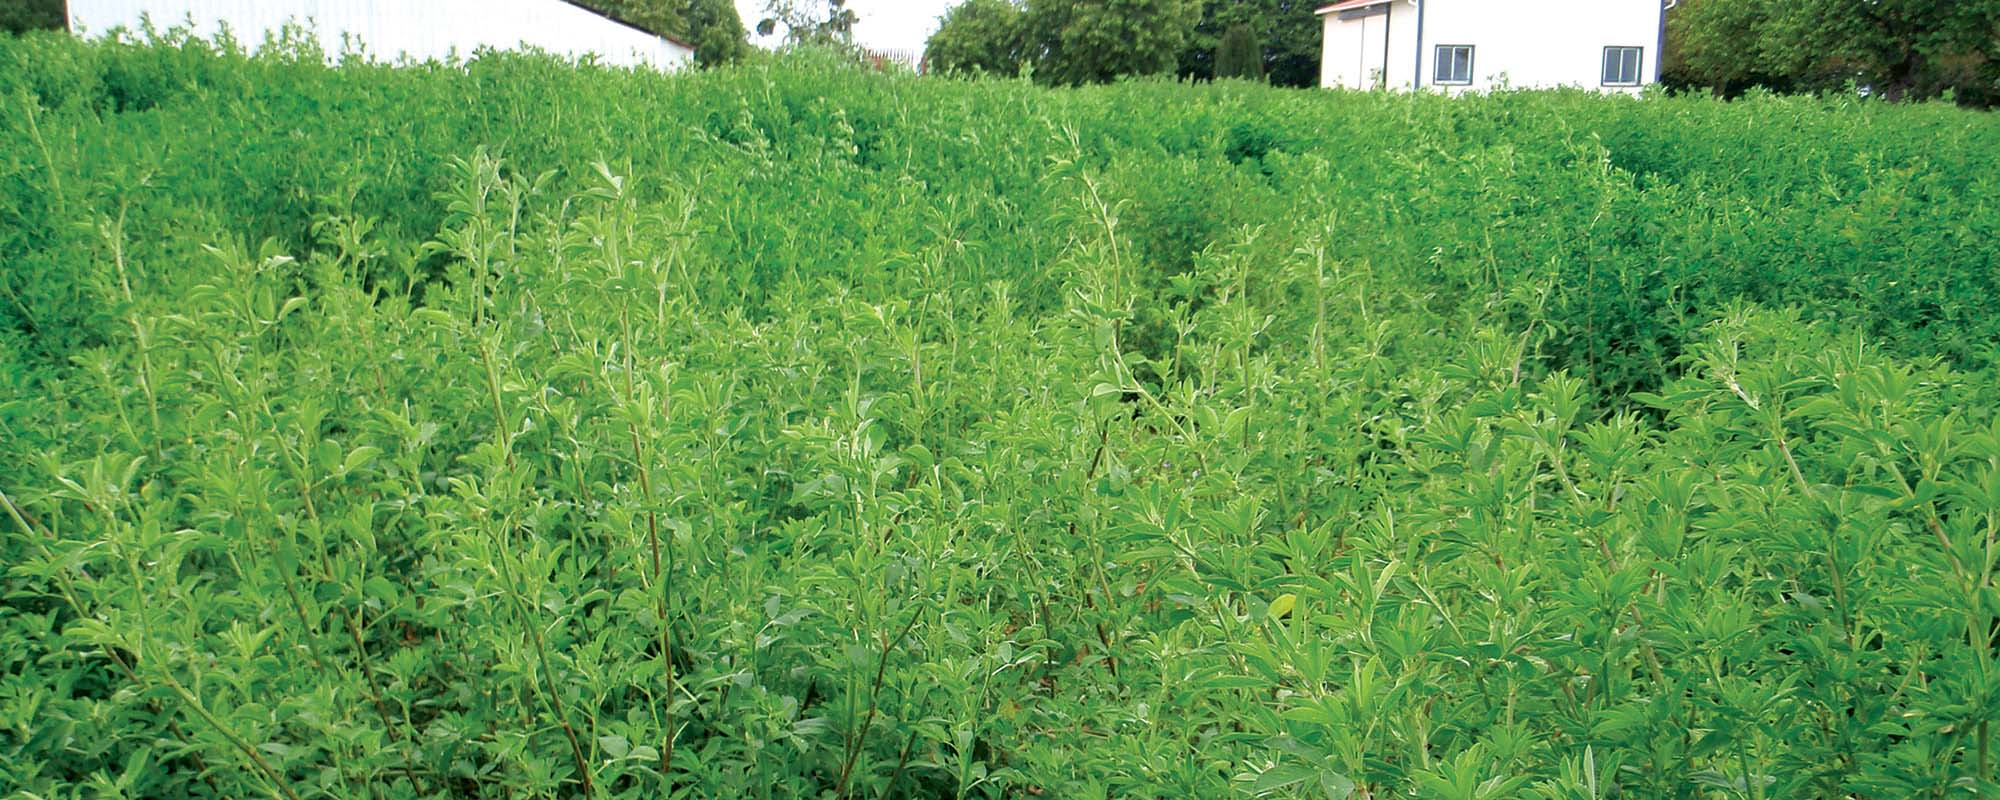 Common Mistakes in Growing Alfalfa